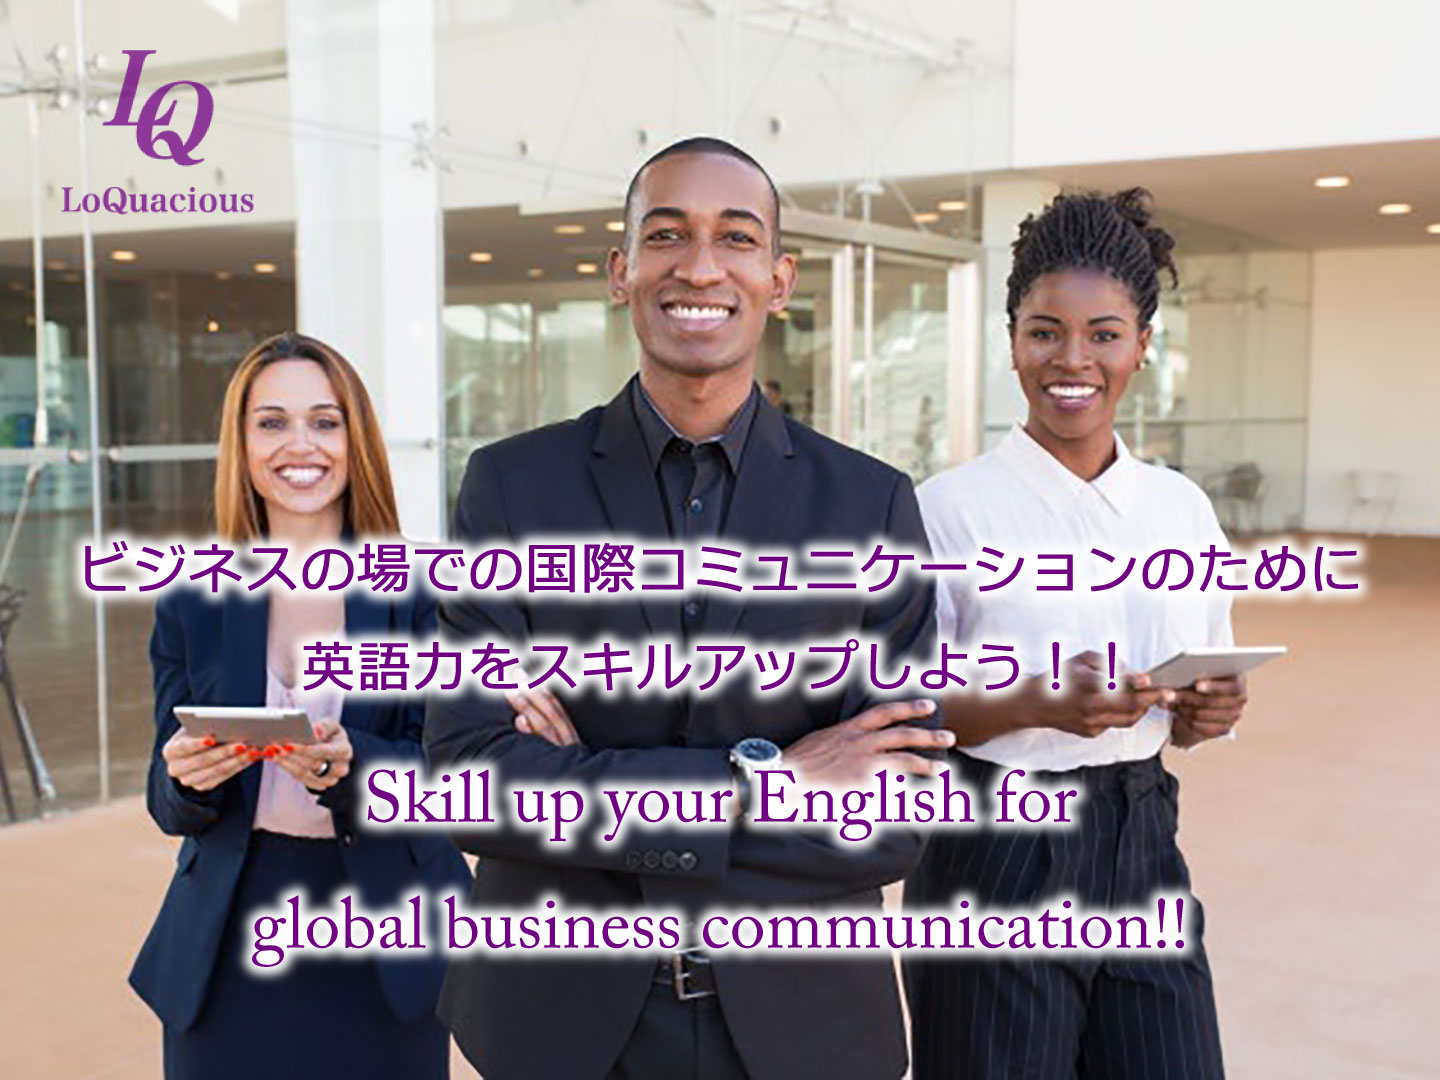 Skill up your English for international business communication!!